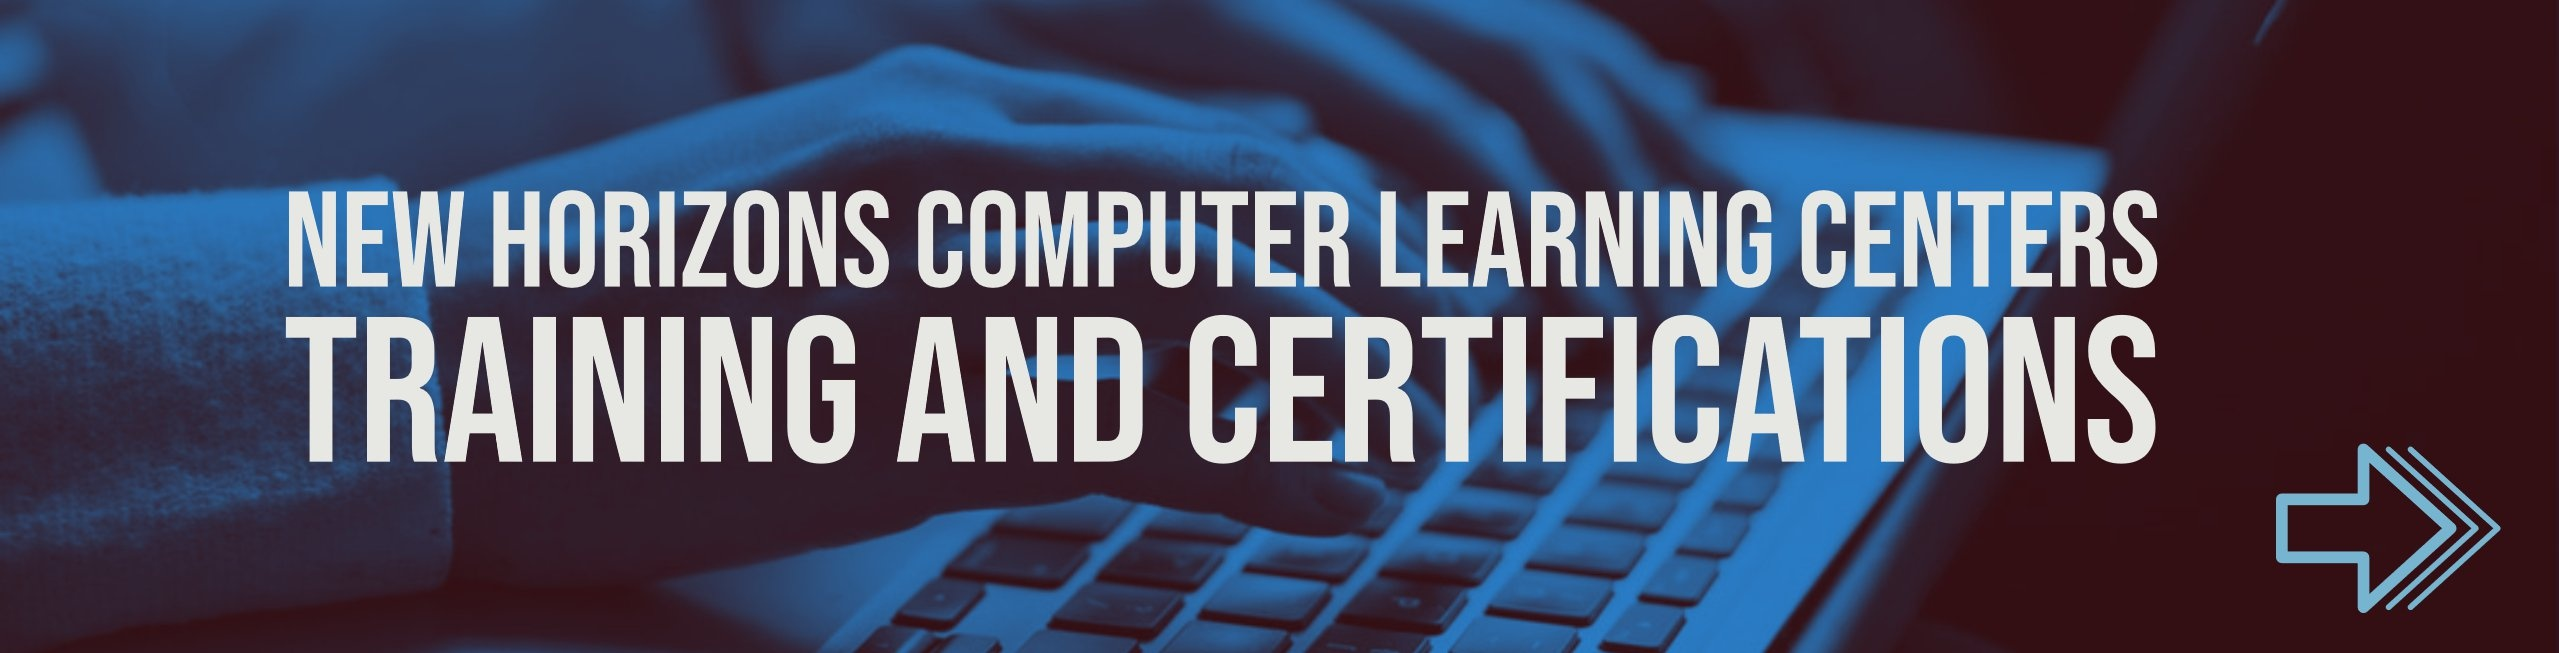 New Horizons Computer Learning Centers Training and Certifications